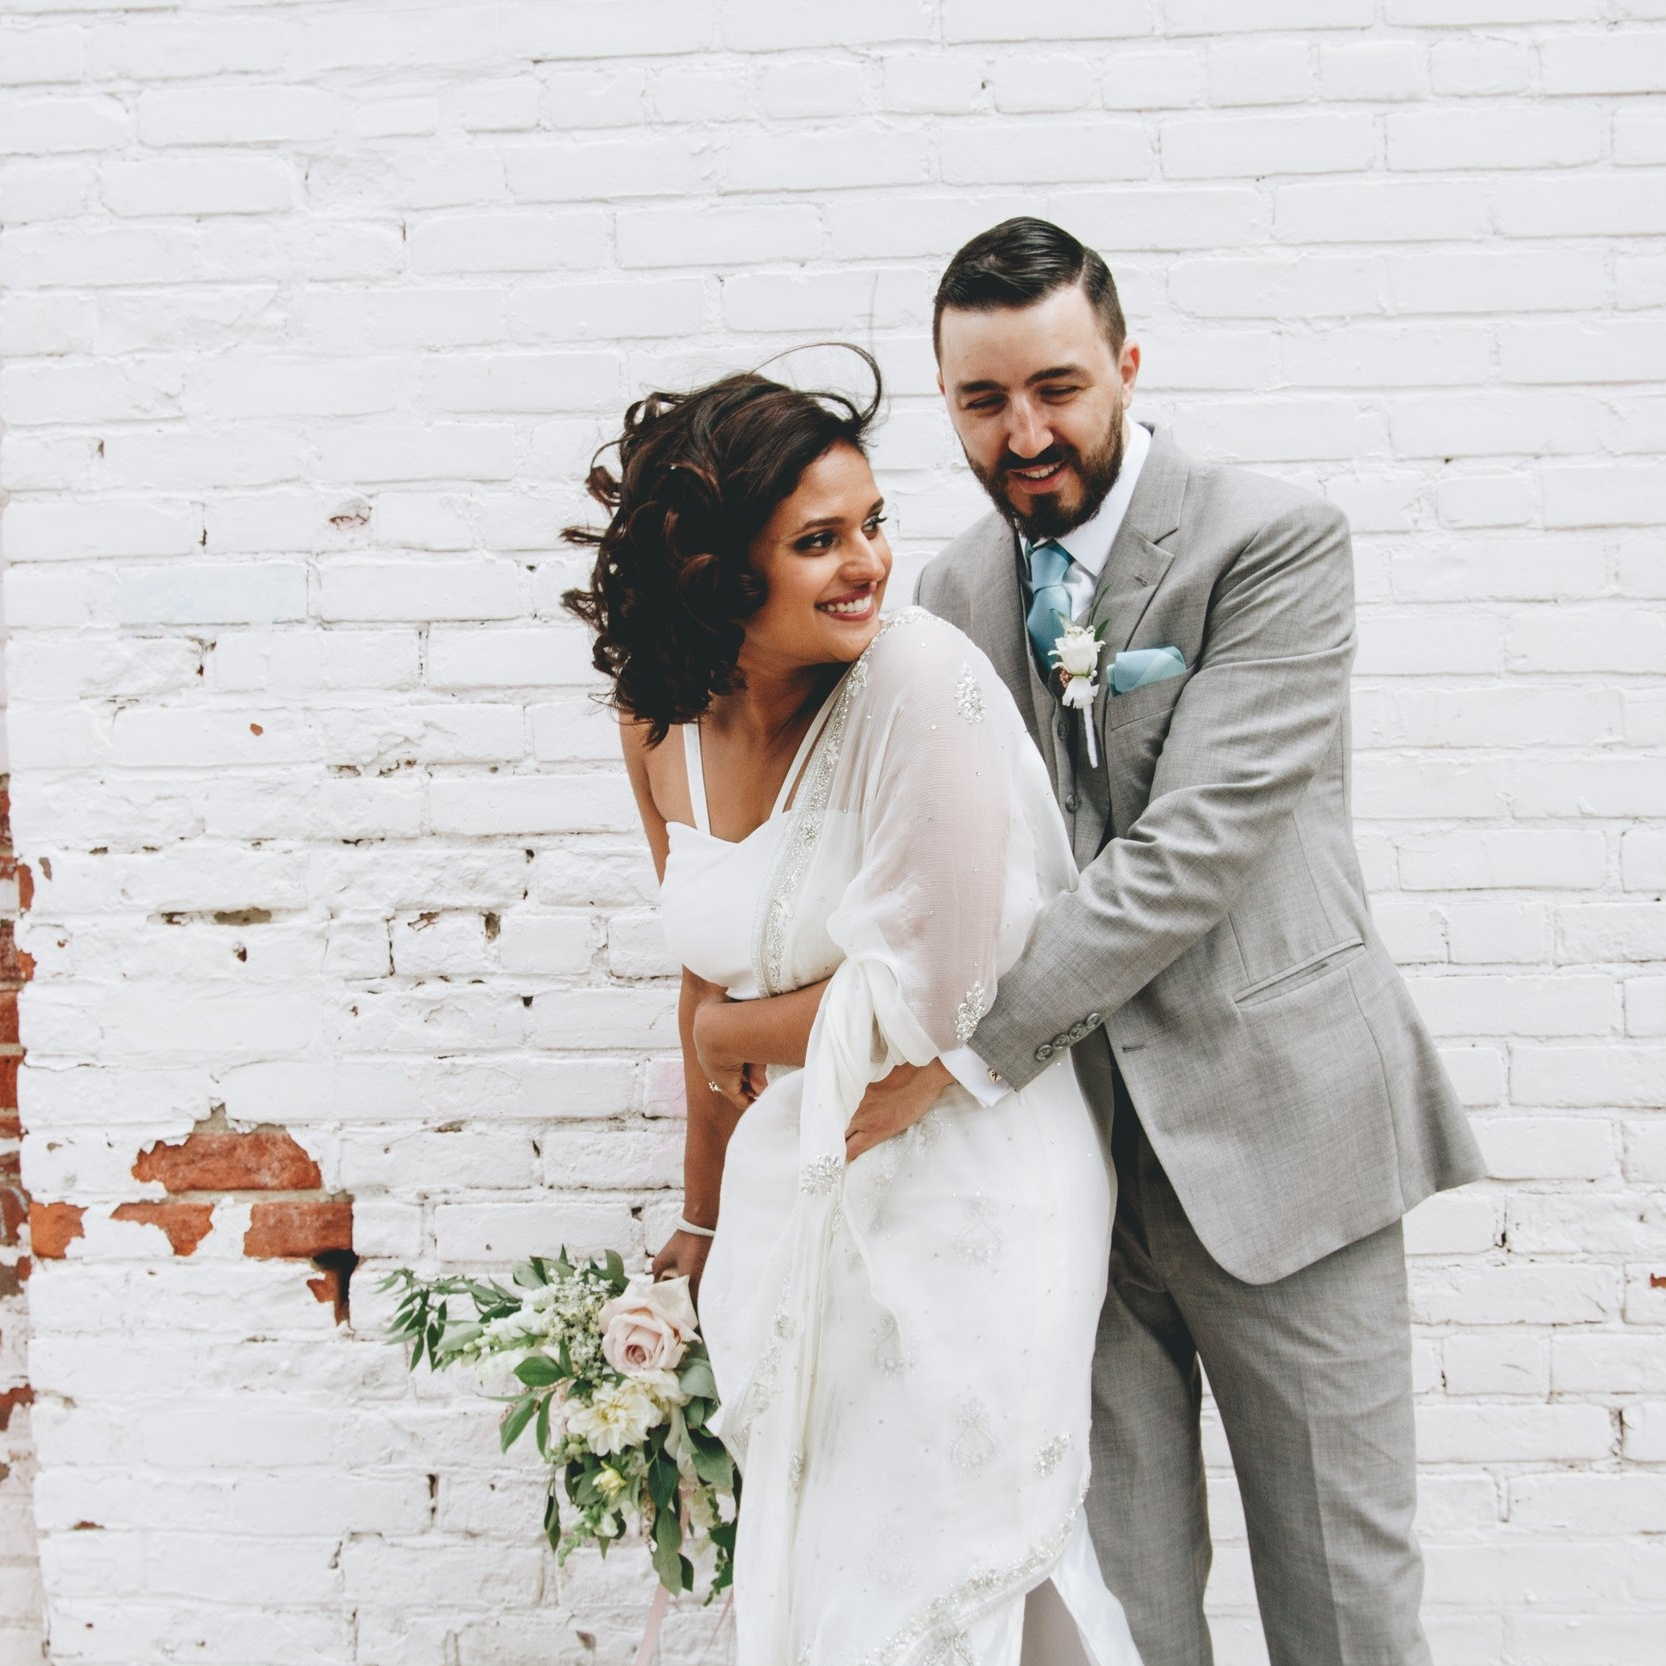 Celebrate - It's wedding day! My team and I will be there to manage the suppliers, logistically coordinate the flow of the day and ensure your set-up and vision is met.